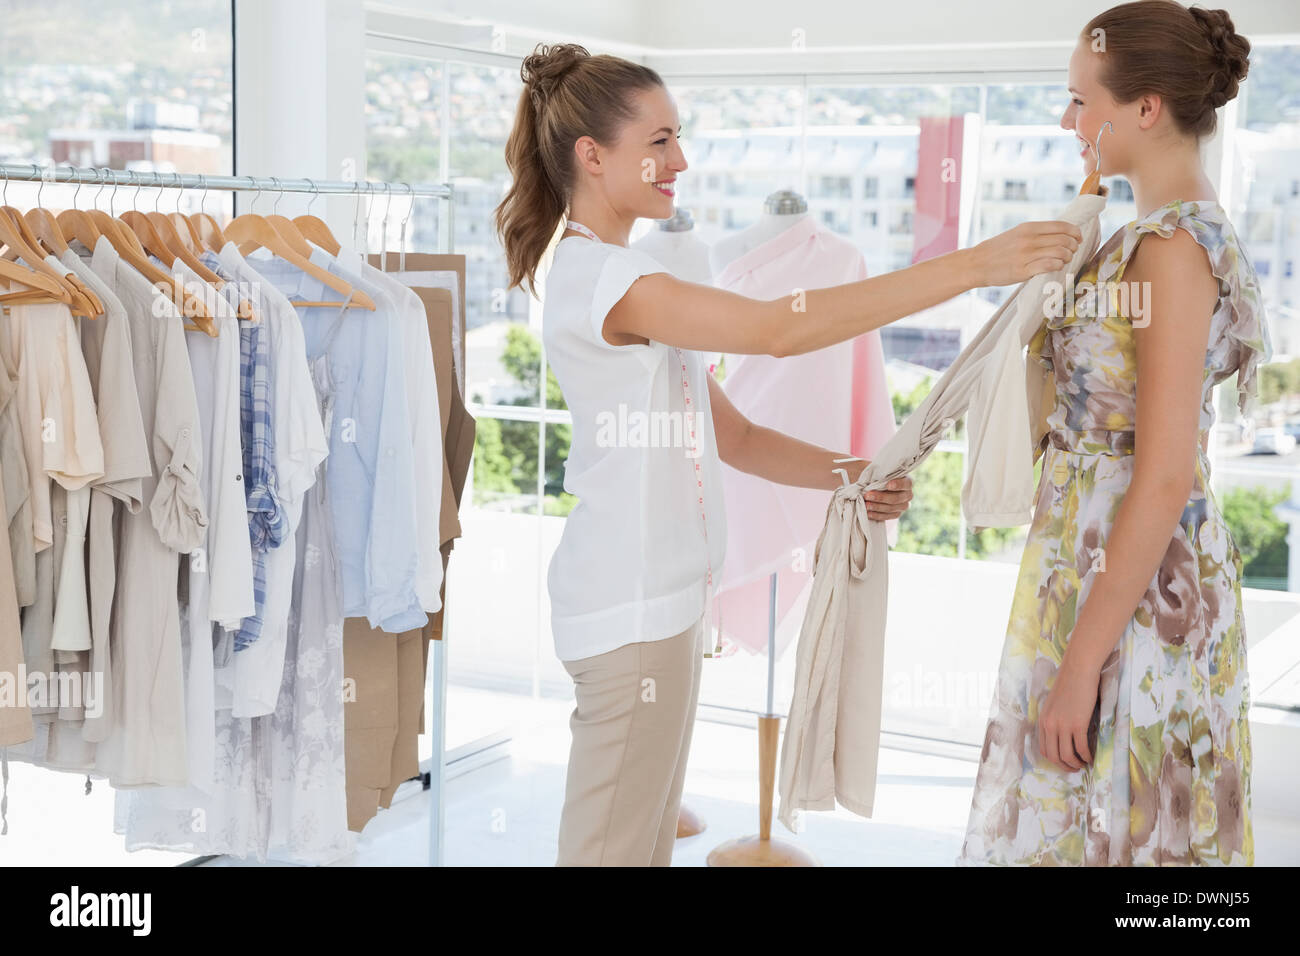 saleswoman assisting woman with